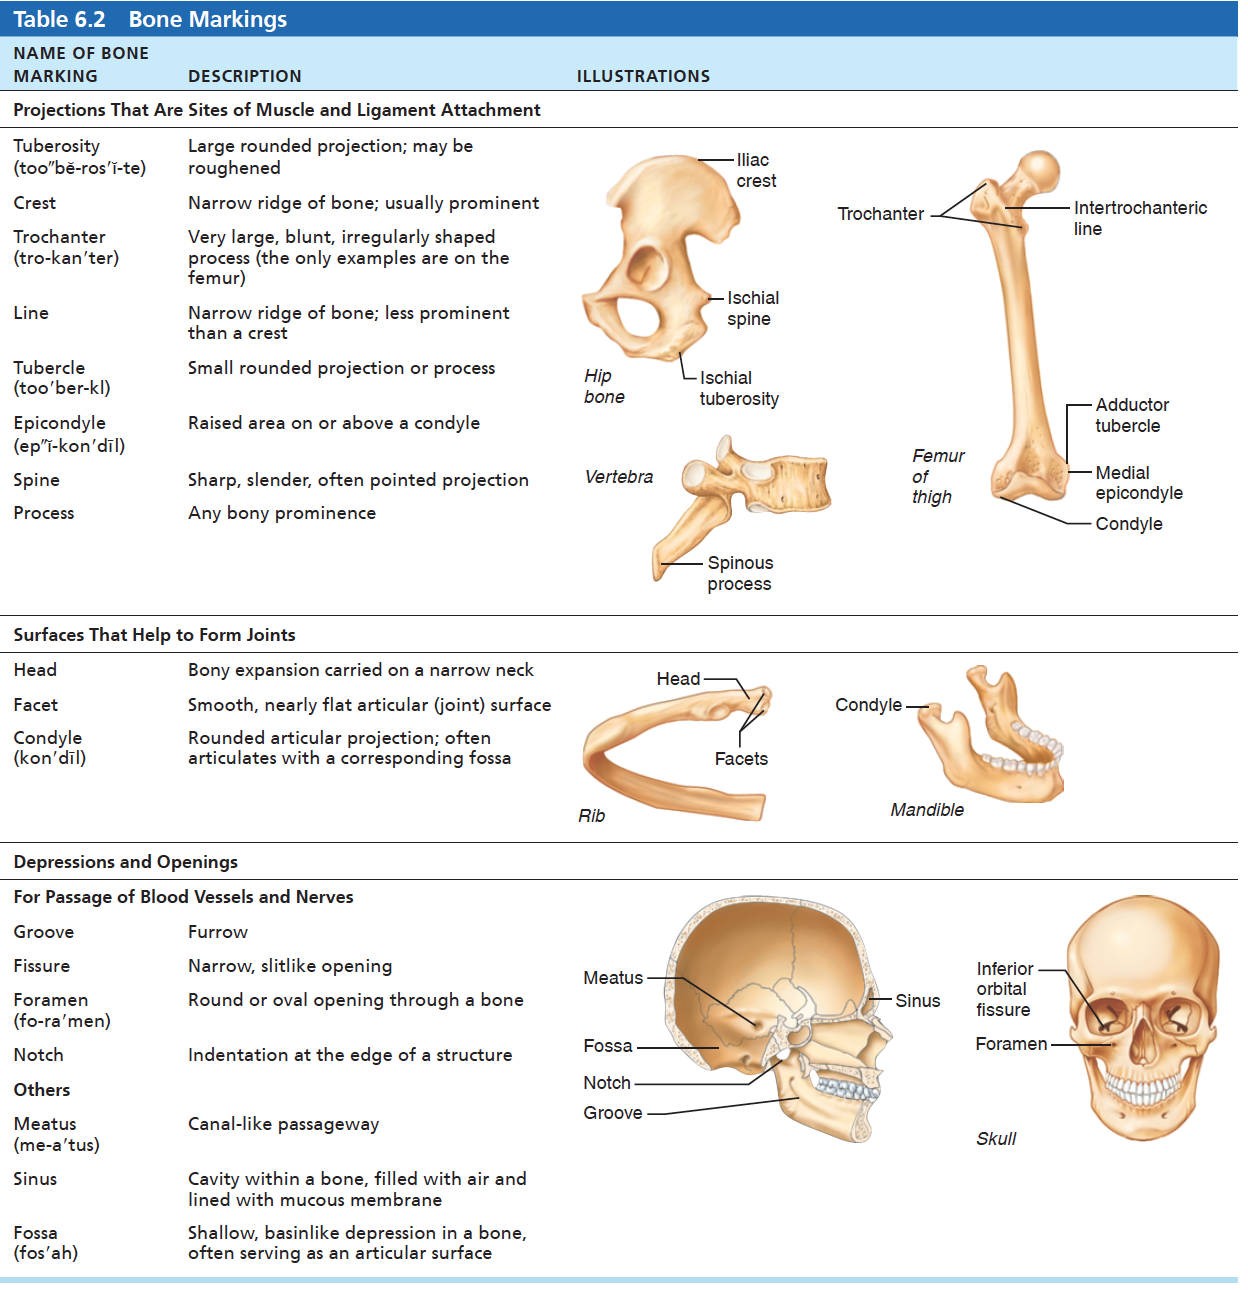 Table Lists Types Of Bone Markings Along With